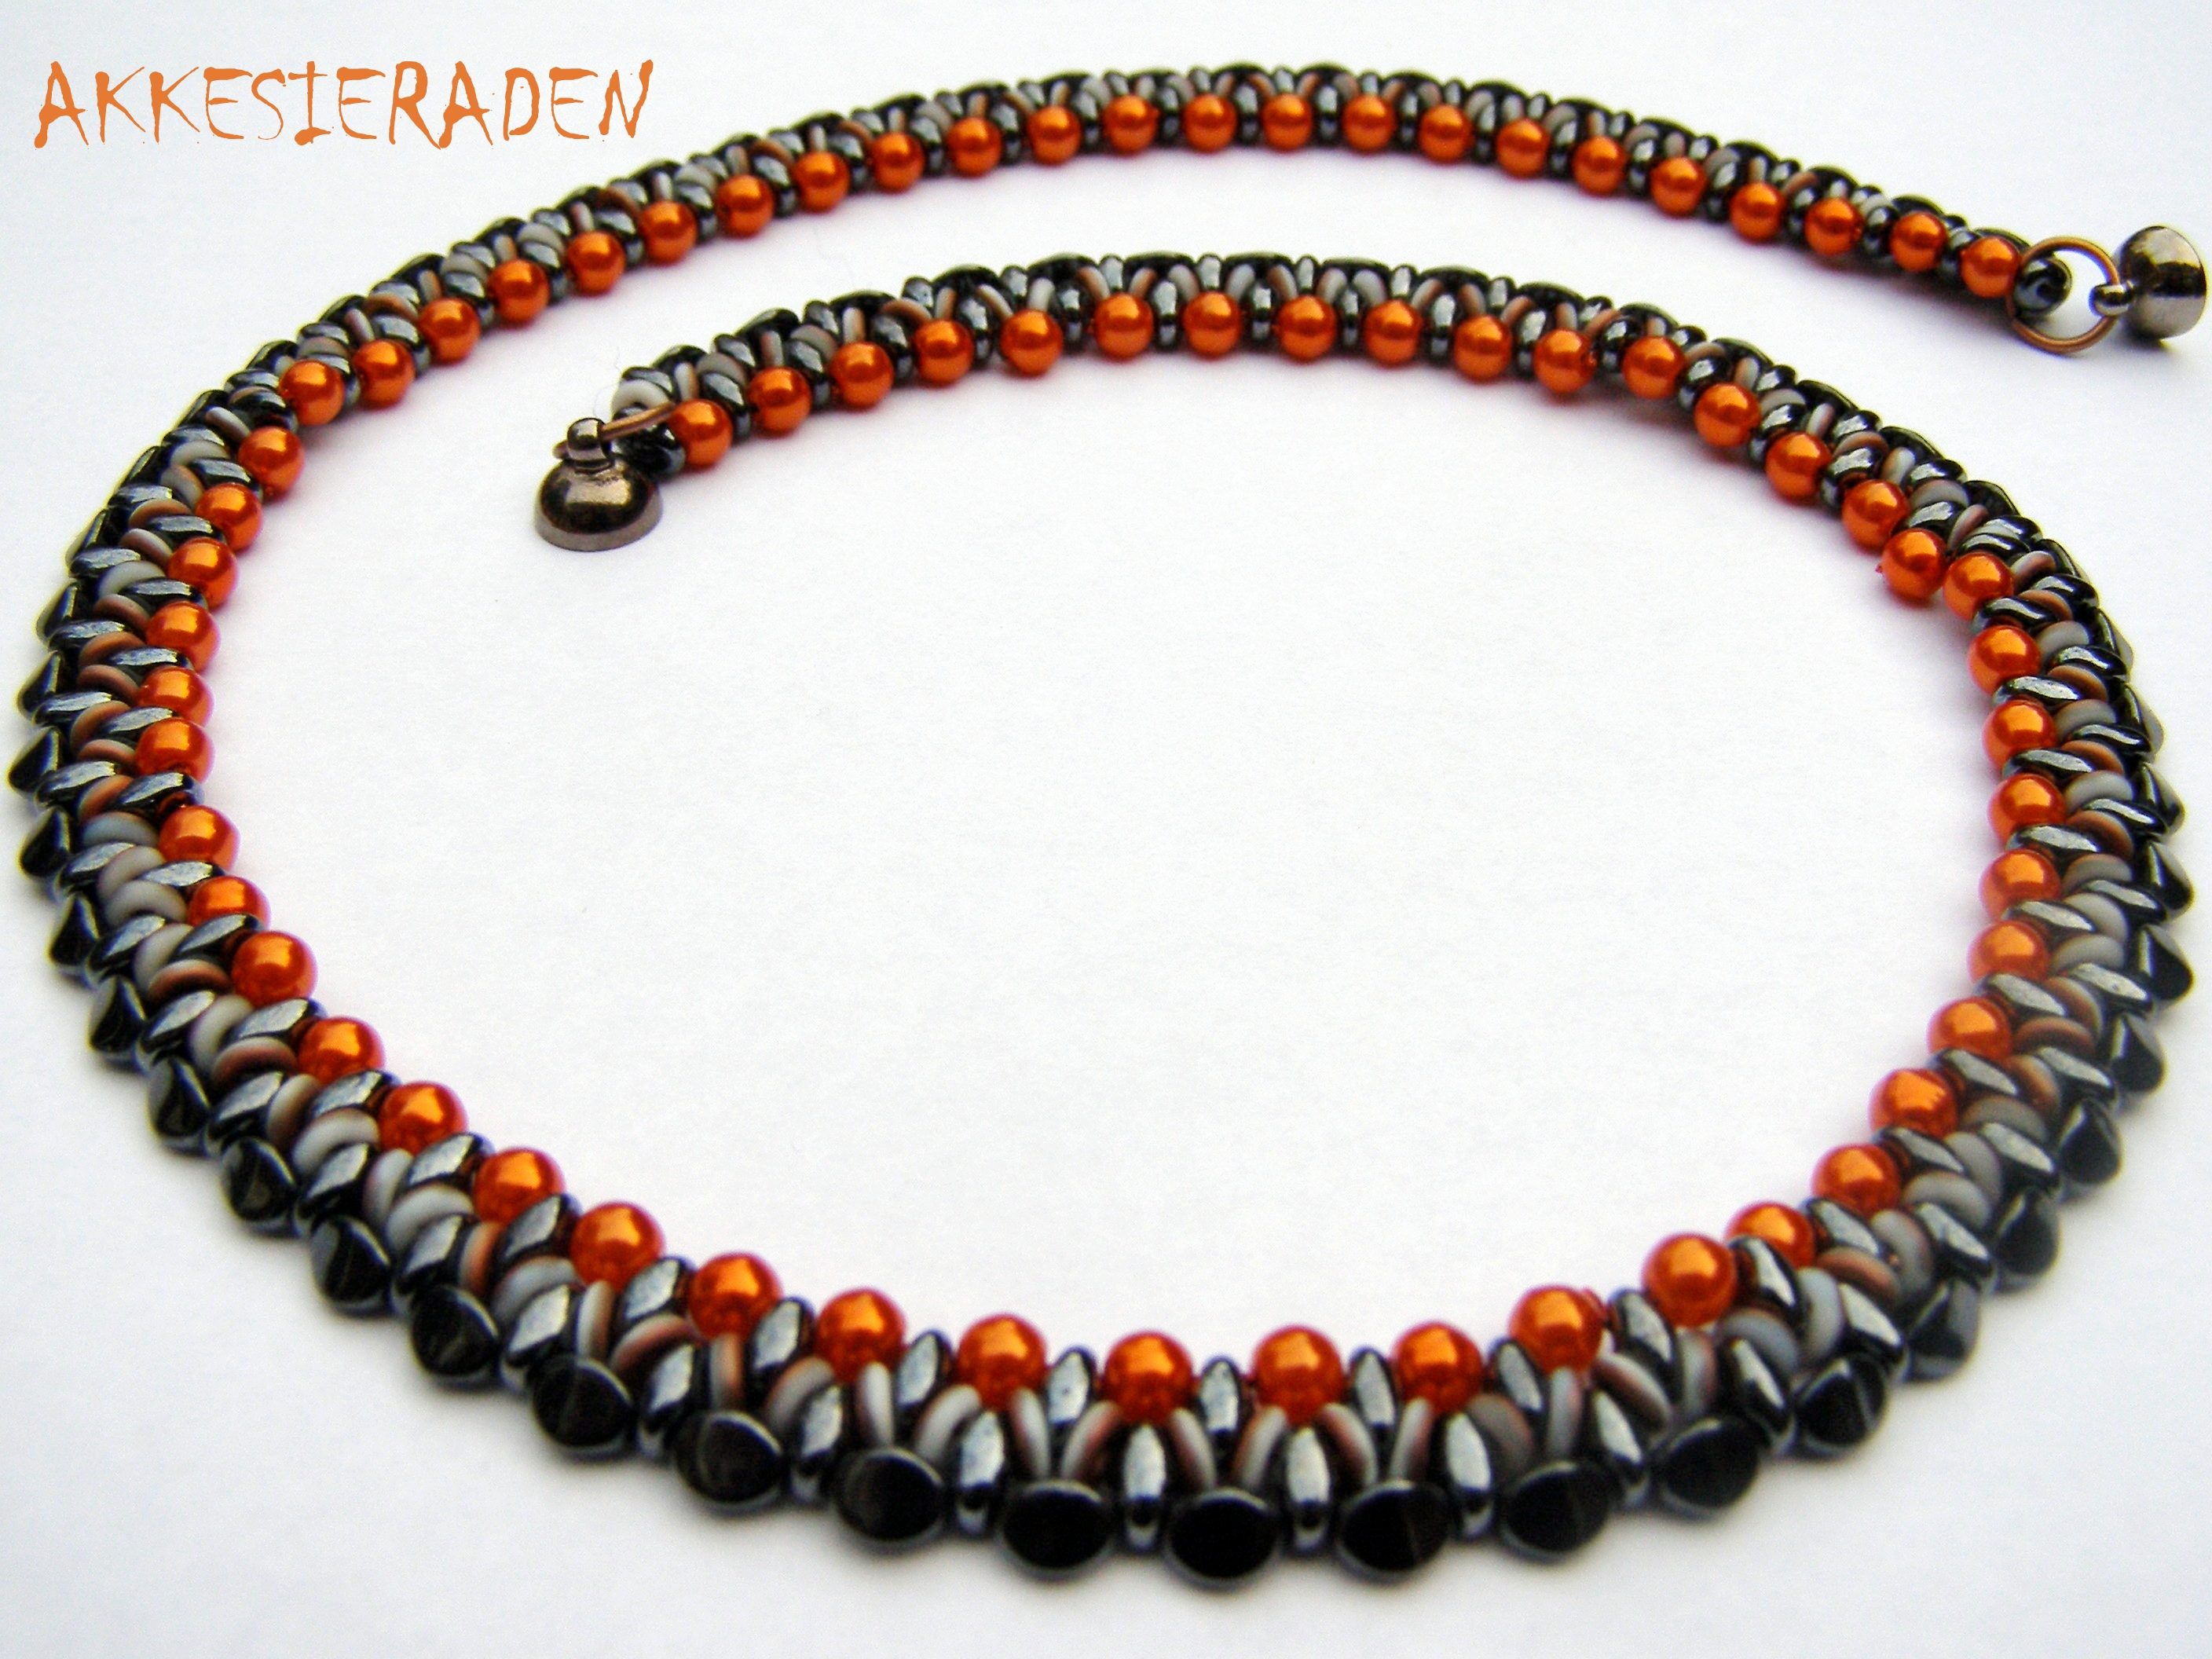 bead o creaties necklace with free more beads design patternnog met meer